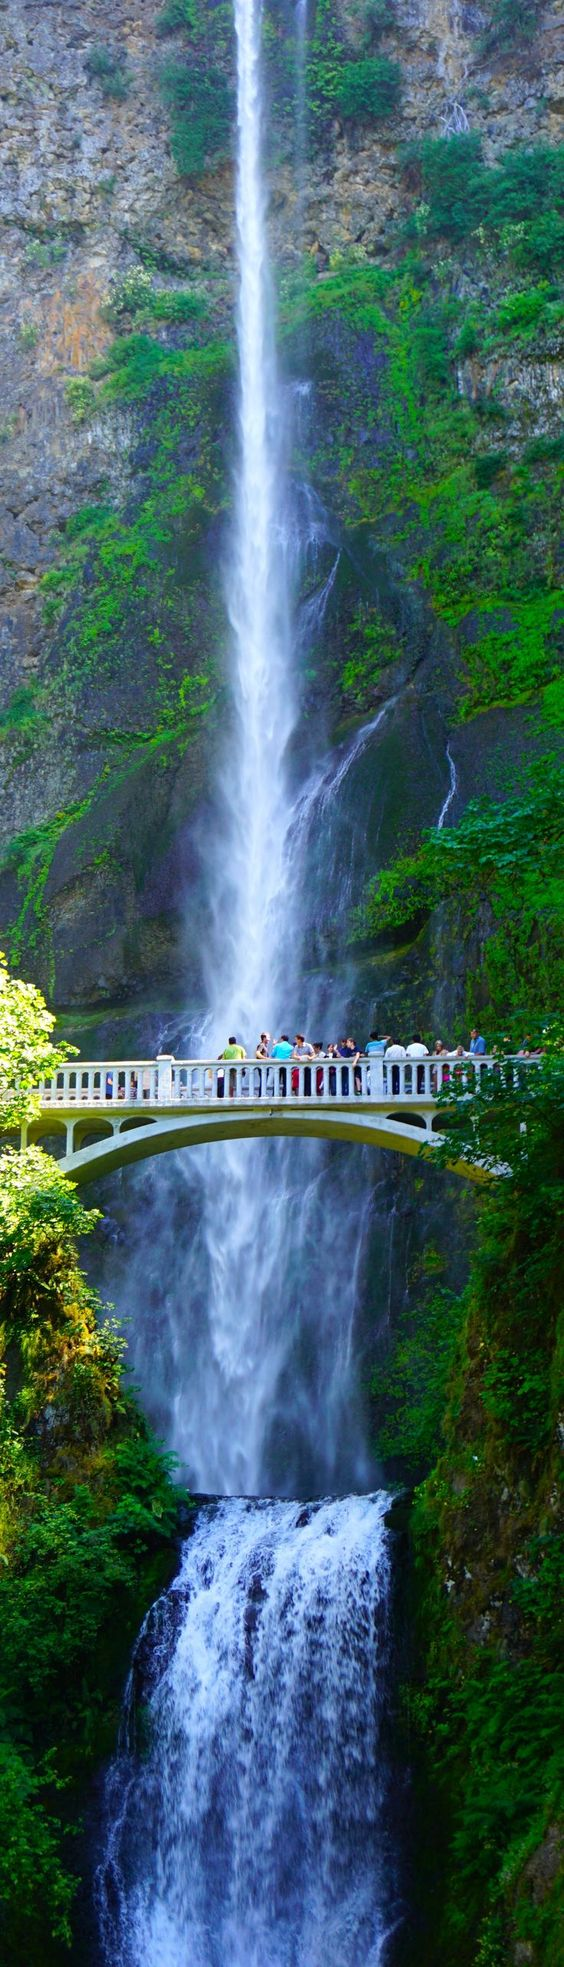 Multnomah Falls Waterfall in Bridal Veil, United States of America Multnomah Falls is a waterfall on the Oregon side of the Columbia River Gorge, located east of Troutd: